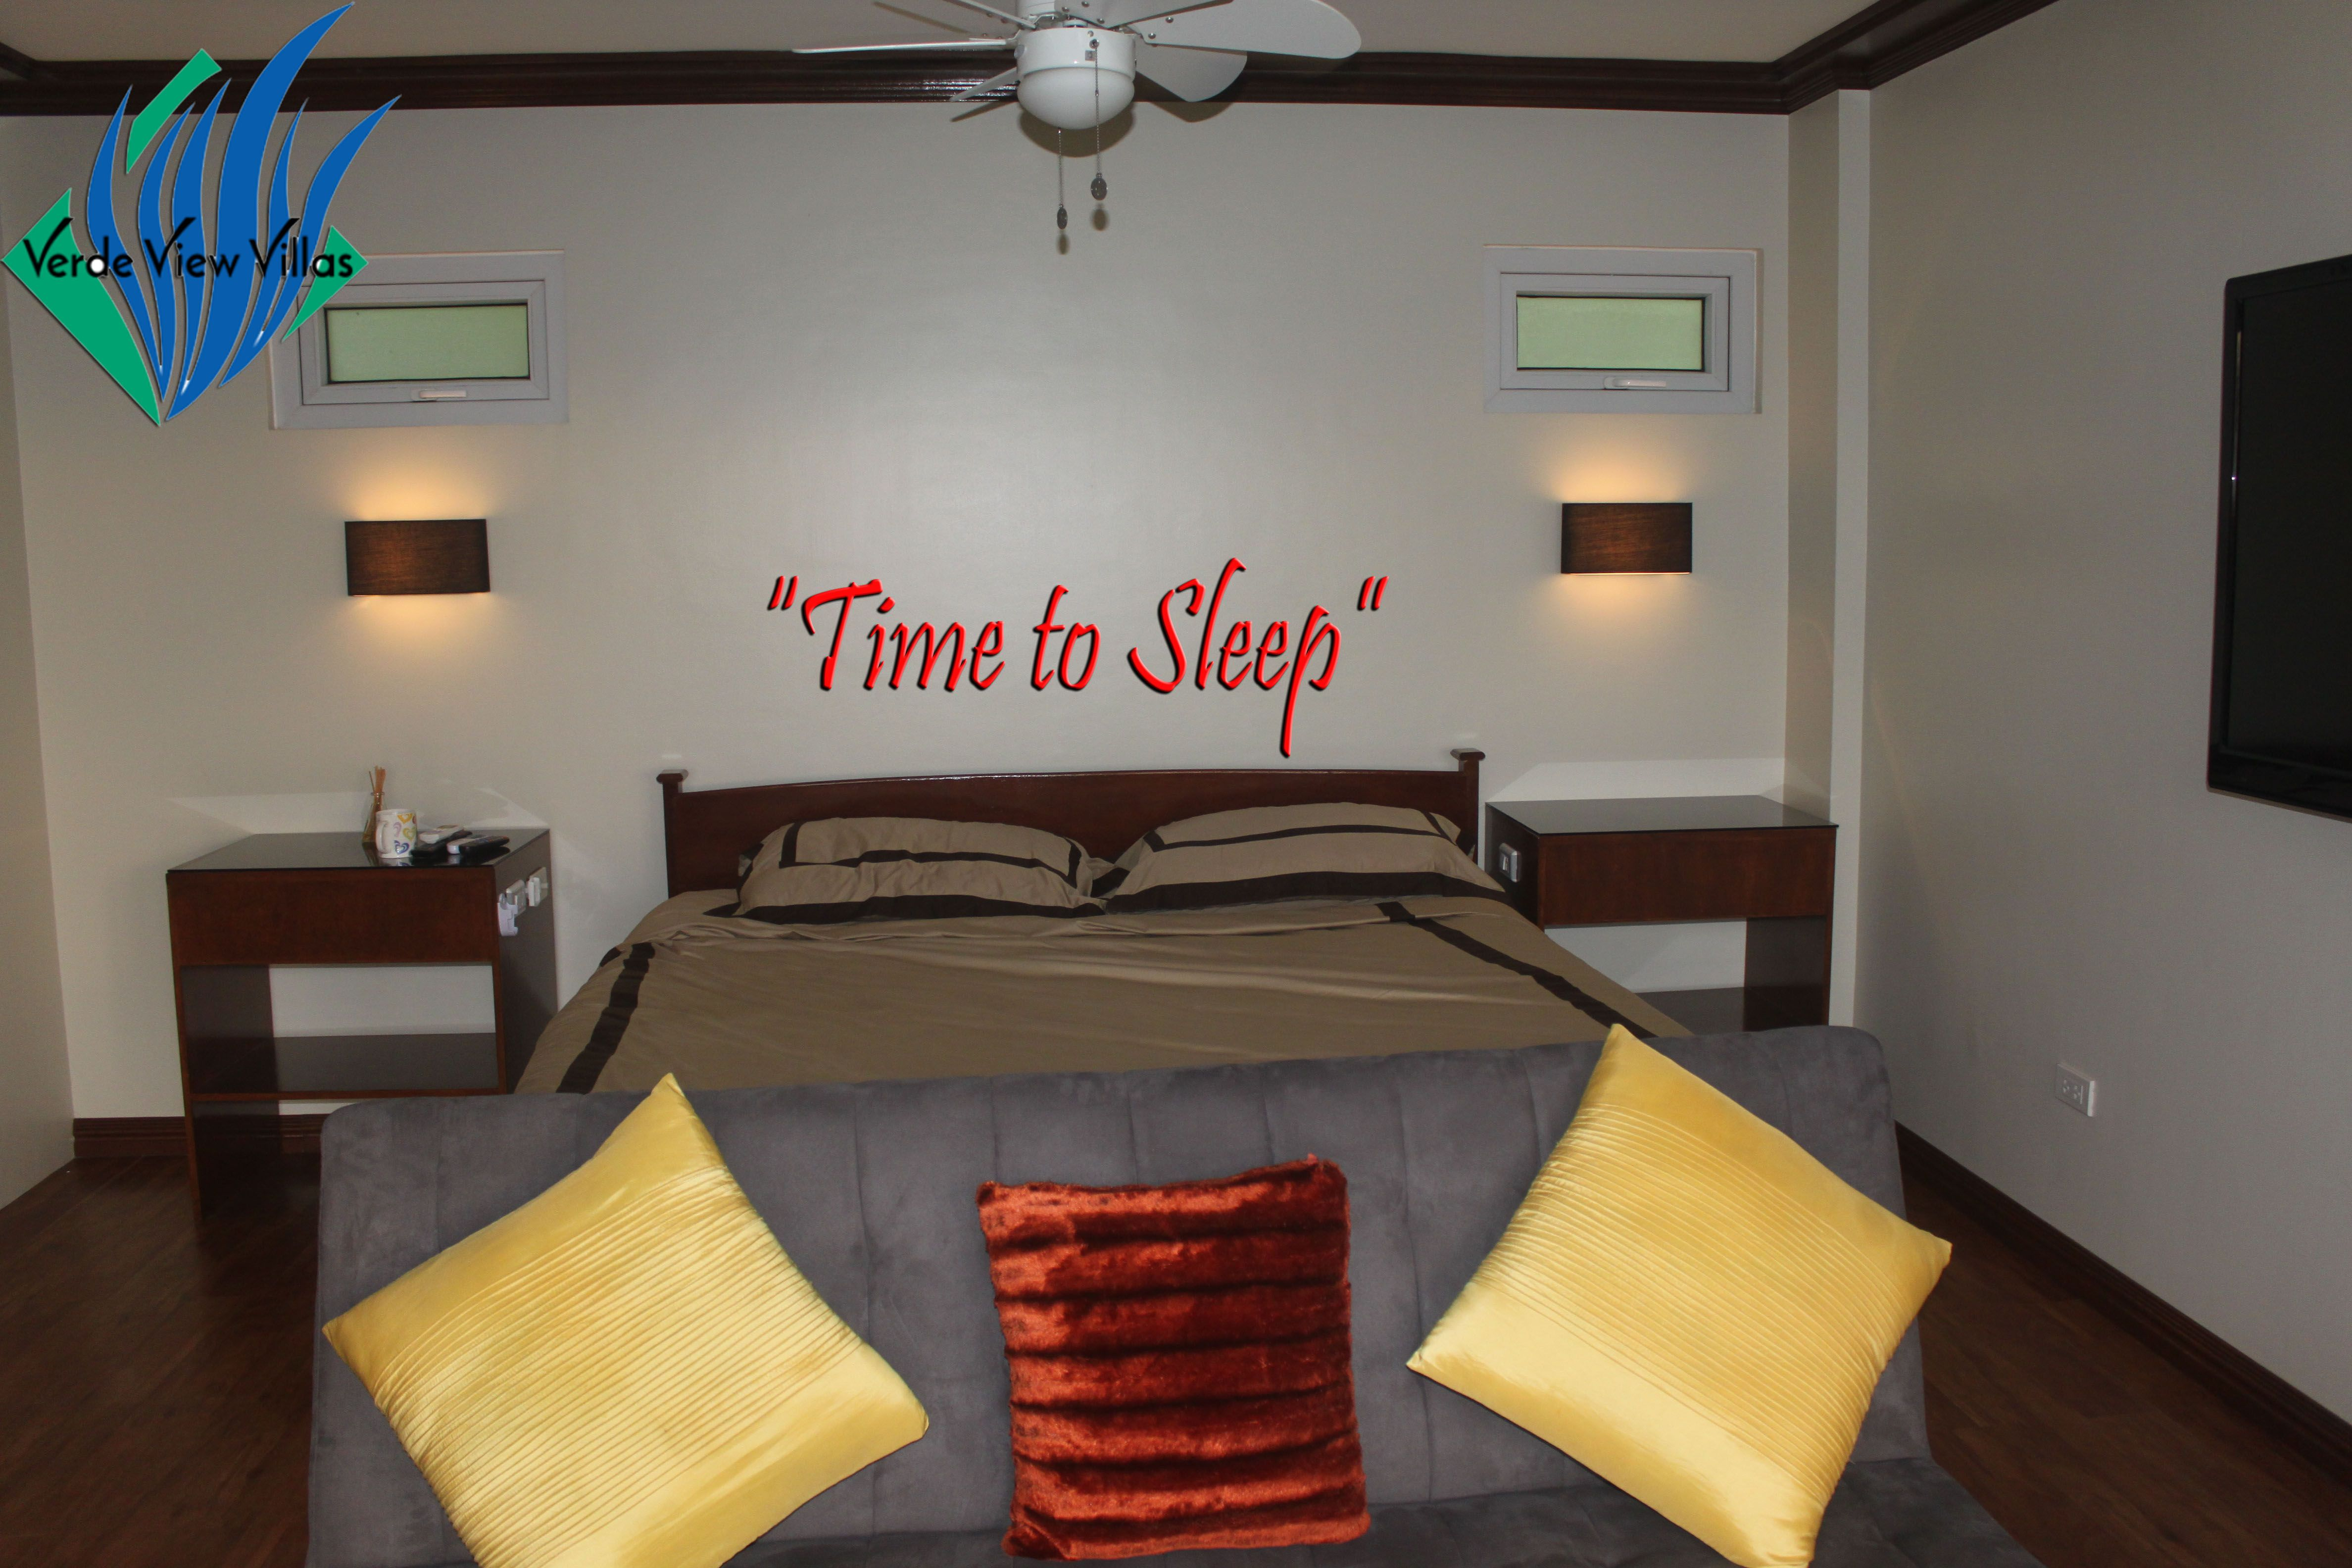 """It's time to rest and have a sweet dreams in one of our famous suite, Come visit us at Verde View Villas- Puerto Galera!""  Verde View Villas is a boutique resort located at Puerto Galera , Philippines that is perfect for couples and family getaways. We offer the most incredible and relaxing experience to our guests. Once you started indulging yourself in the distinct majesty of the resort, you will see the endless adventures."